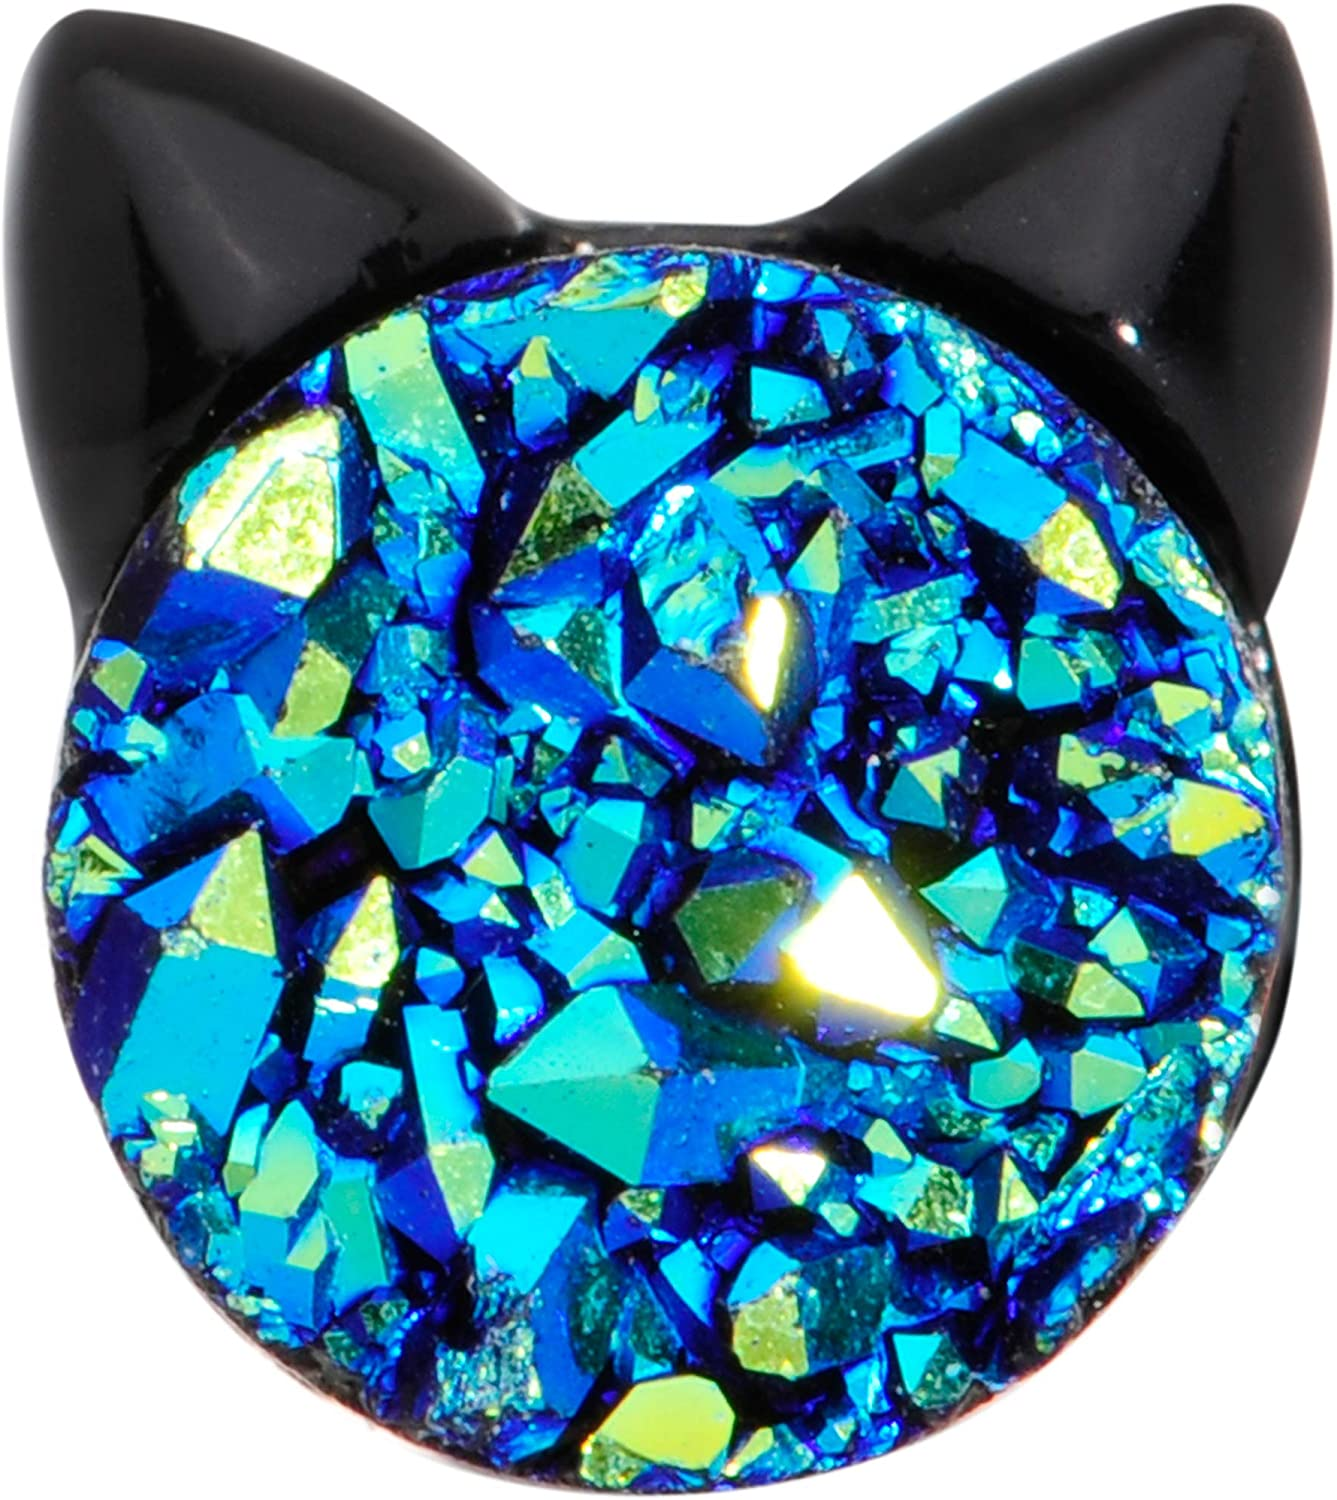 Body Candy 16G Black Plated Steel Helix Stud Tragus Cartilage Earring Blue Accent Black Cat Body Jewelry 6mm